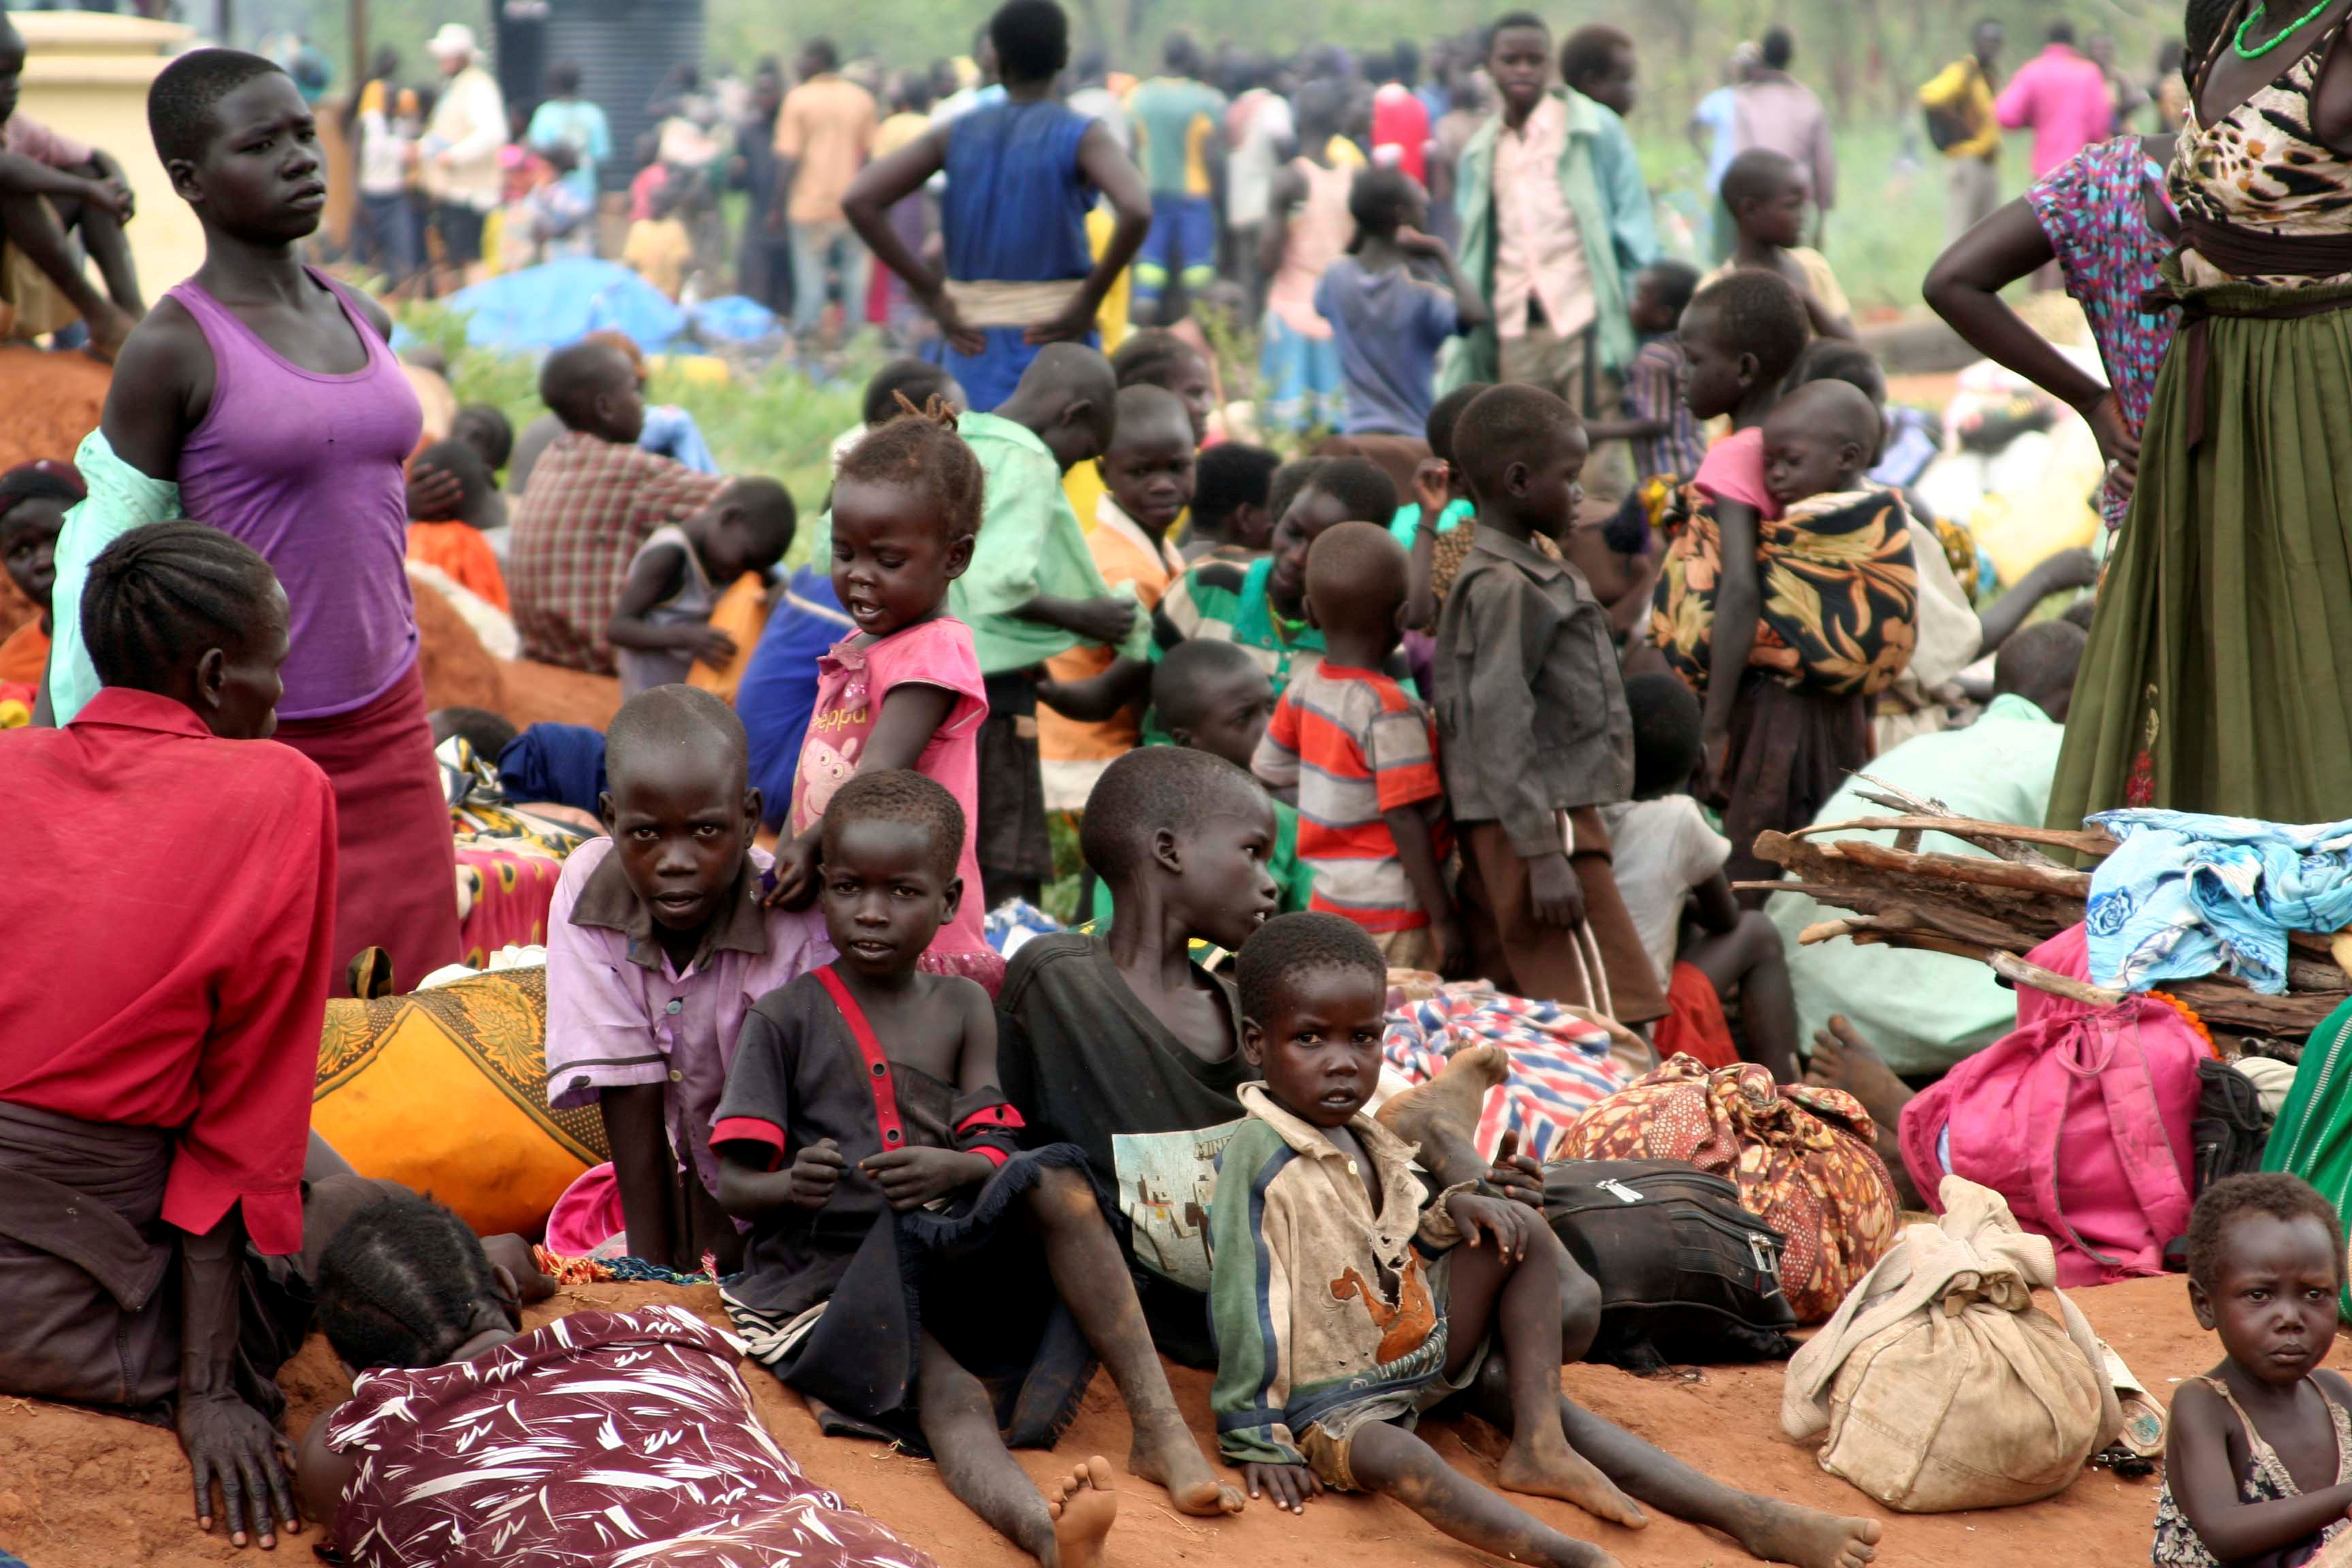 FILE PHOTO: South Sudanese refugees gather with their belongings after crossing into Uganda at the Ngomoromo border post in Lamwo district, northern Uganda, April 4, 2017. REUTERS/Stringer/File photo